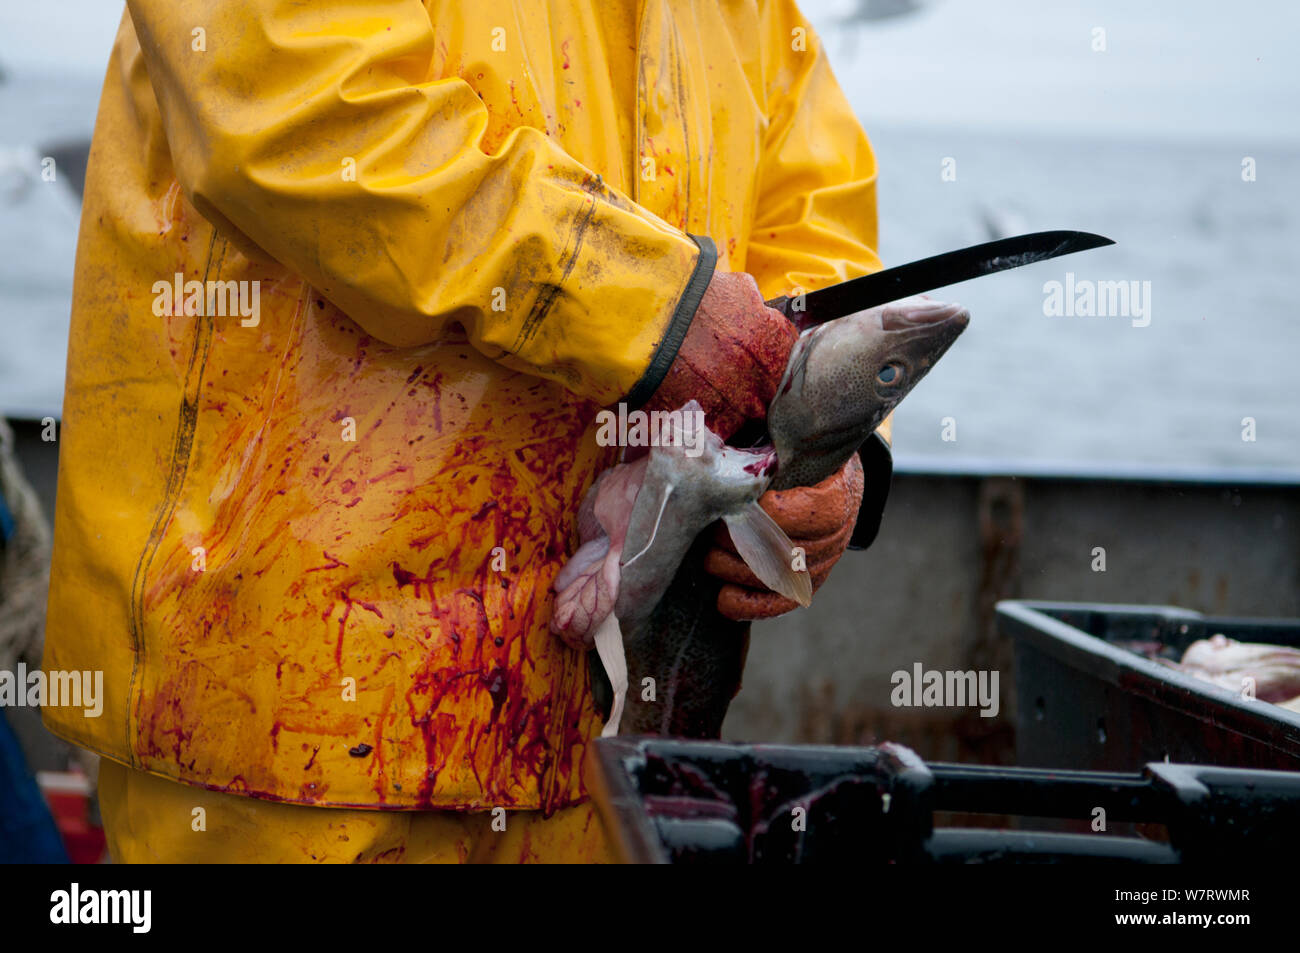 Fisherman cleans Atlantic Cod (Gadus morhua) on deck of fishing trawler. Stellwagen Banks, New England, United States, North Atlantic Ocean Model released. Stock Photo